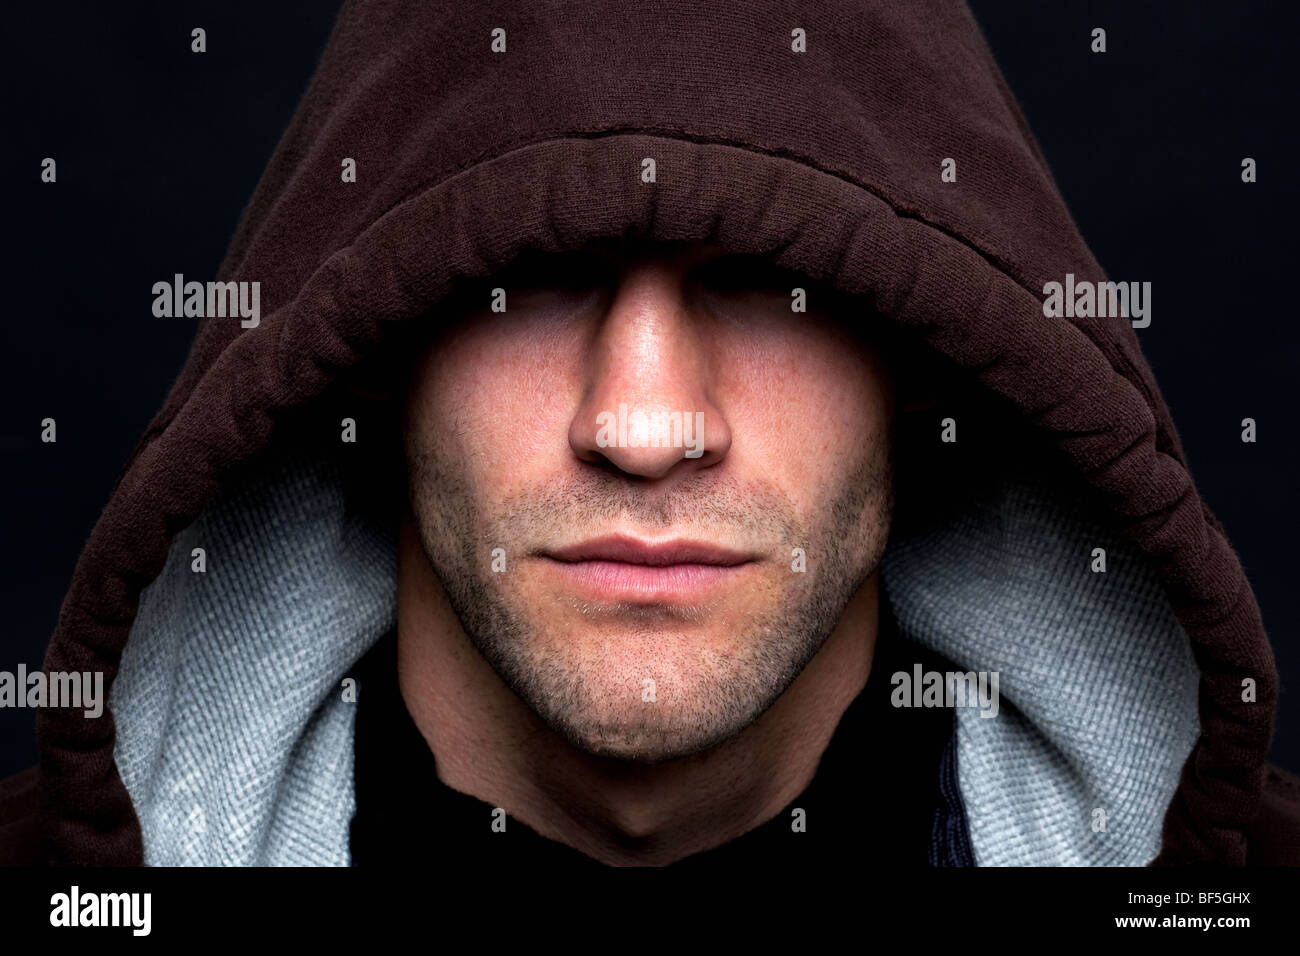 An evil looking man wearing a hooded top with his eyes hidden against a black background. - Stock Image